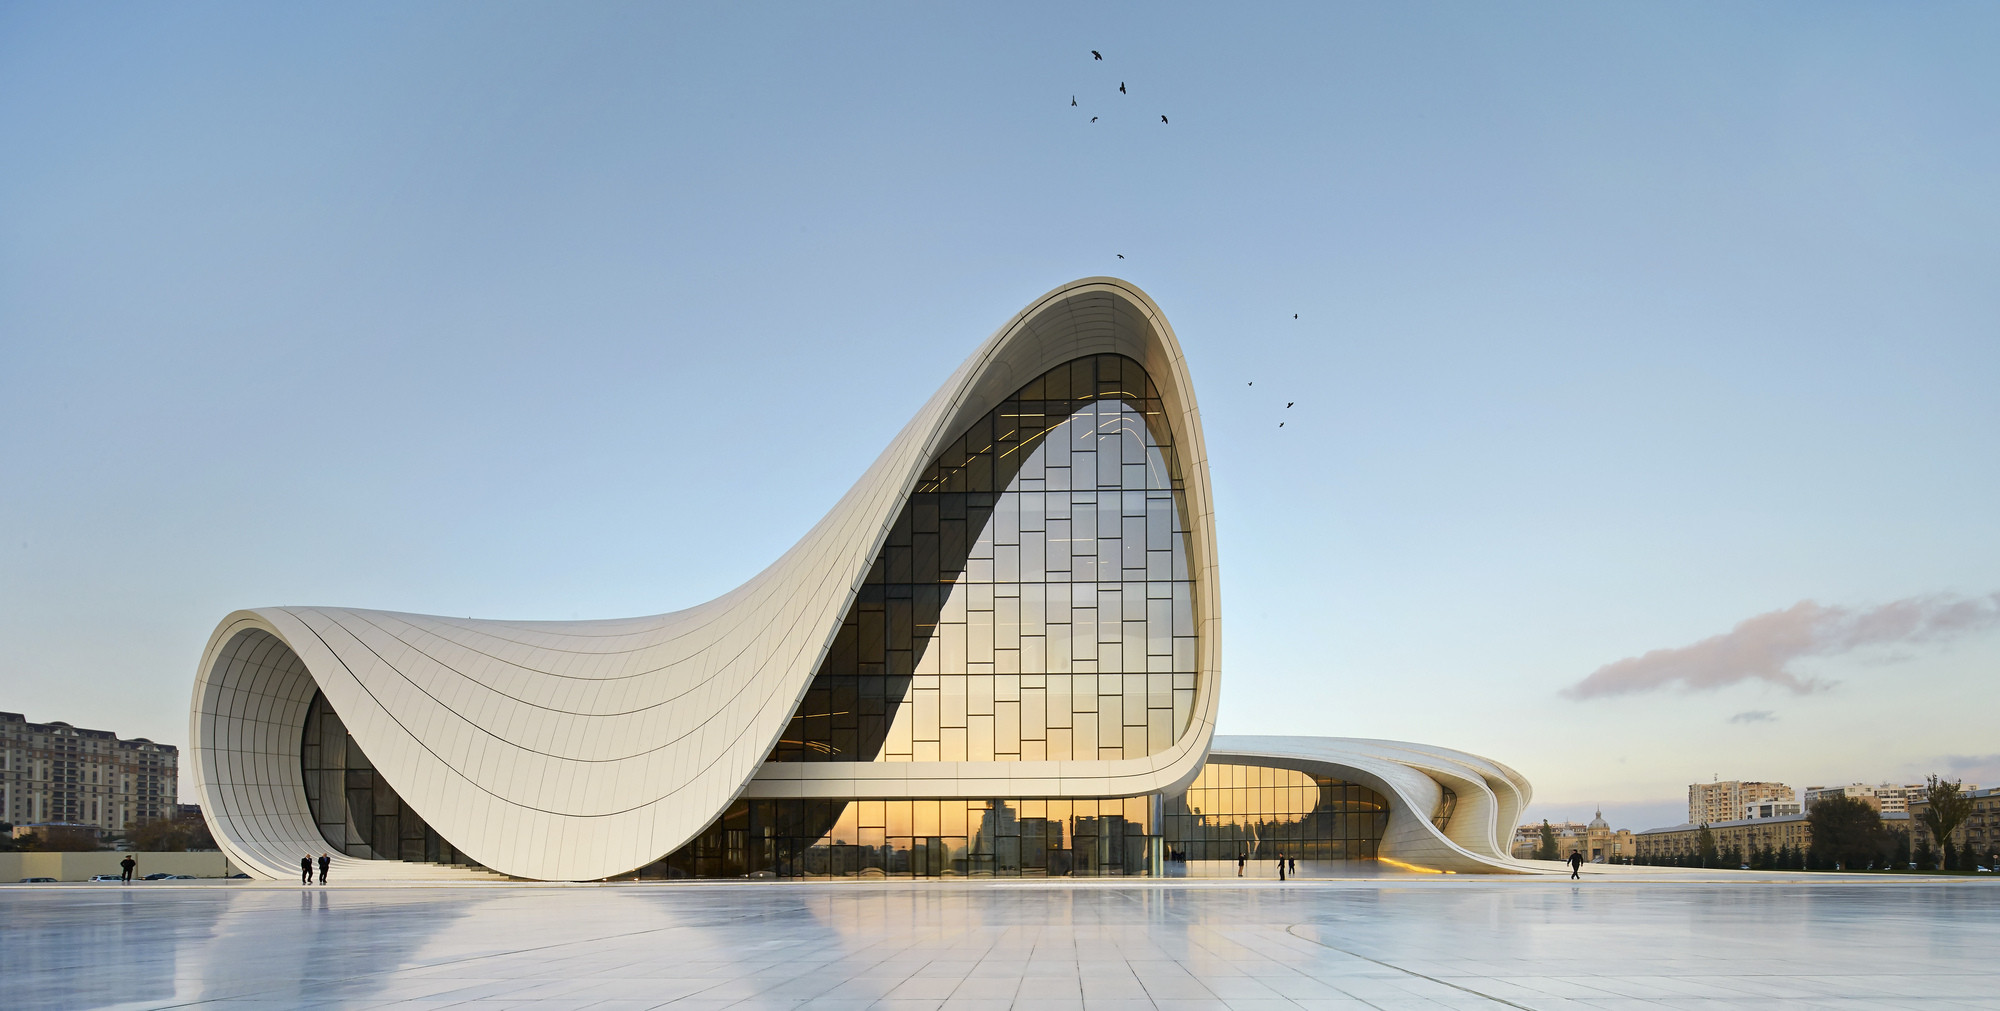 "Patrik Schumacher: ""The Denunciation of Architectural Icons and Stars is Superficial and Ignorant"", Zaha Hadid Architects' Heydar Aliyev Center. Image © Hufton + Crow"